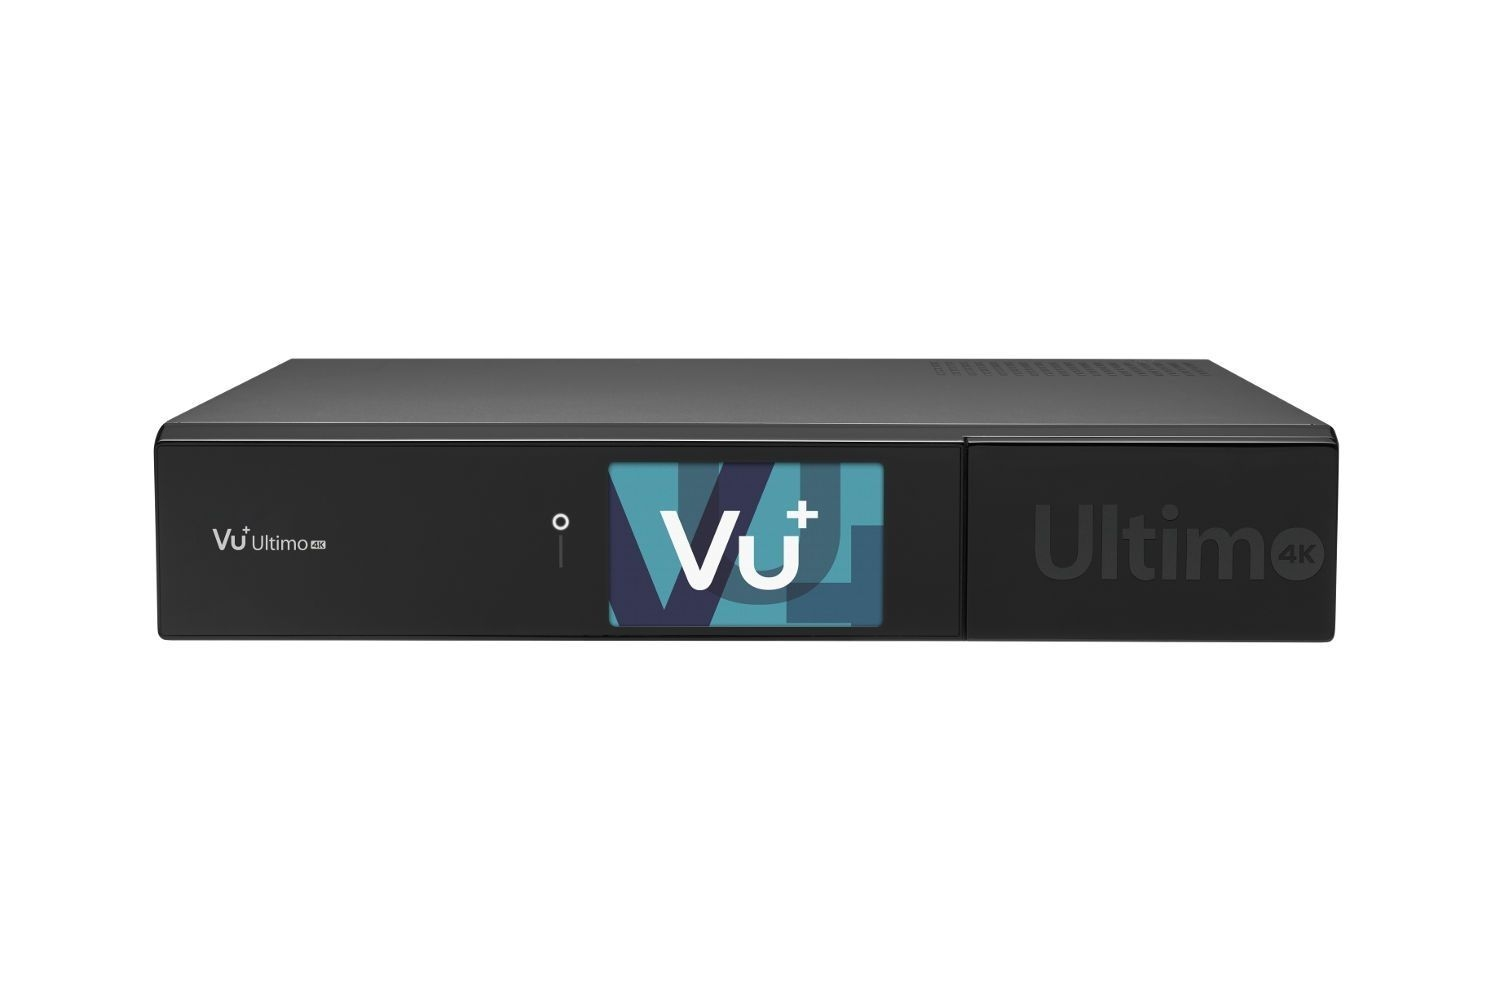 VU+ Ultimo 4K 2x DVB-C FBC / 1x DVB-S2 Dual Tuner 1 TB HDD Linux Receiver UHD 2160p